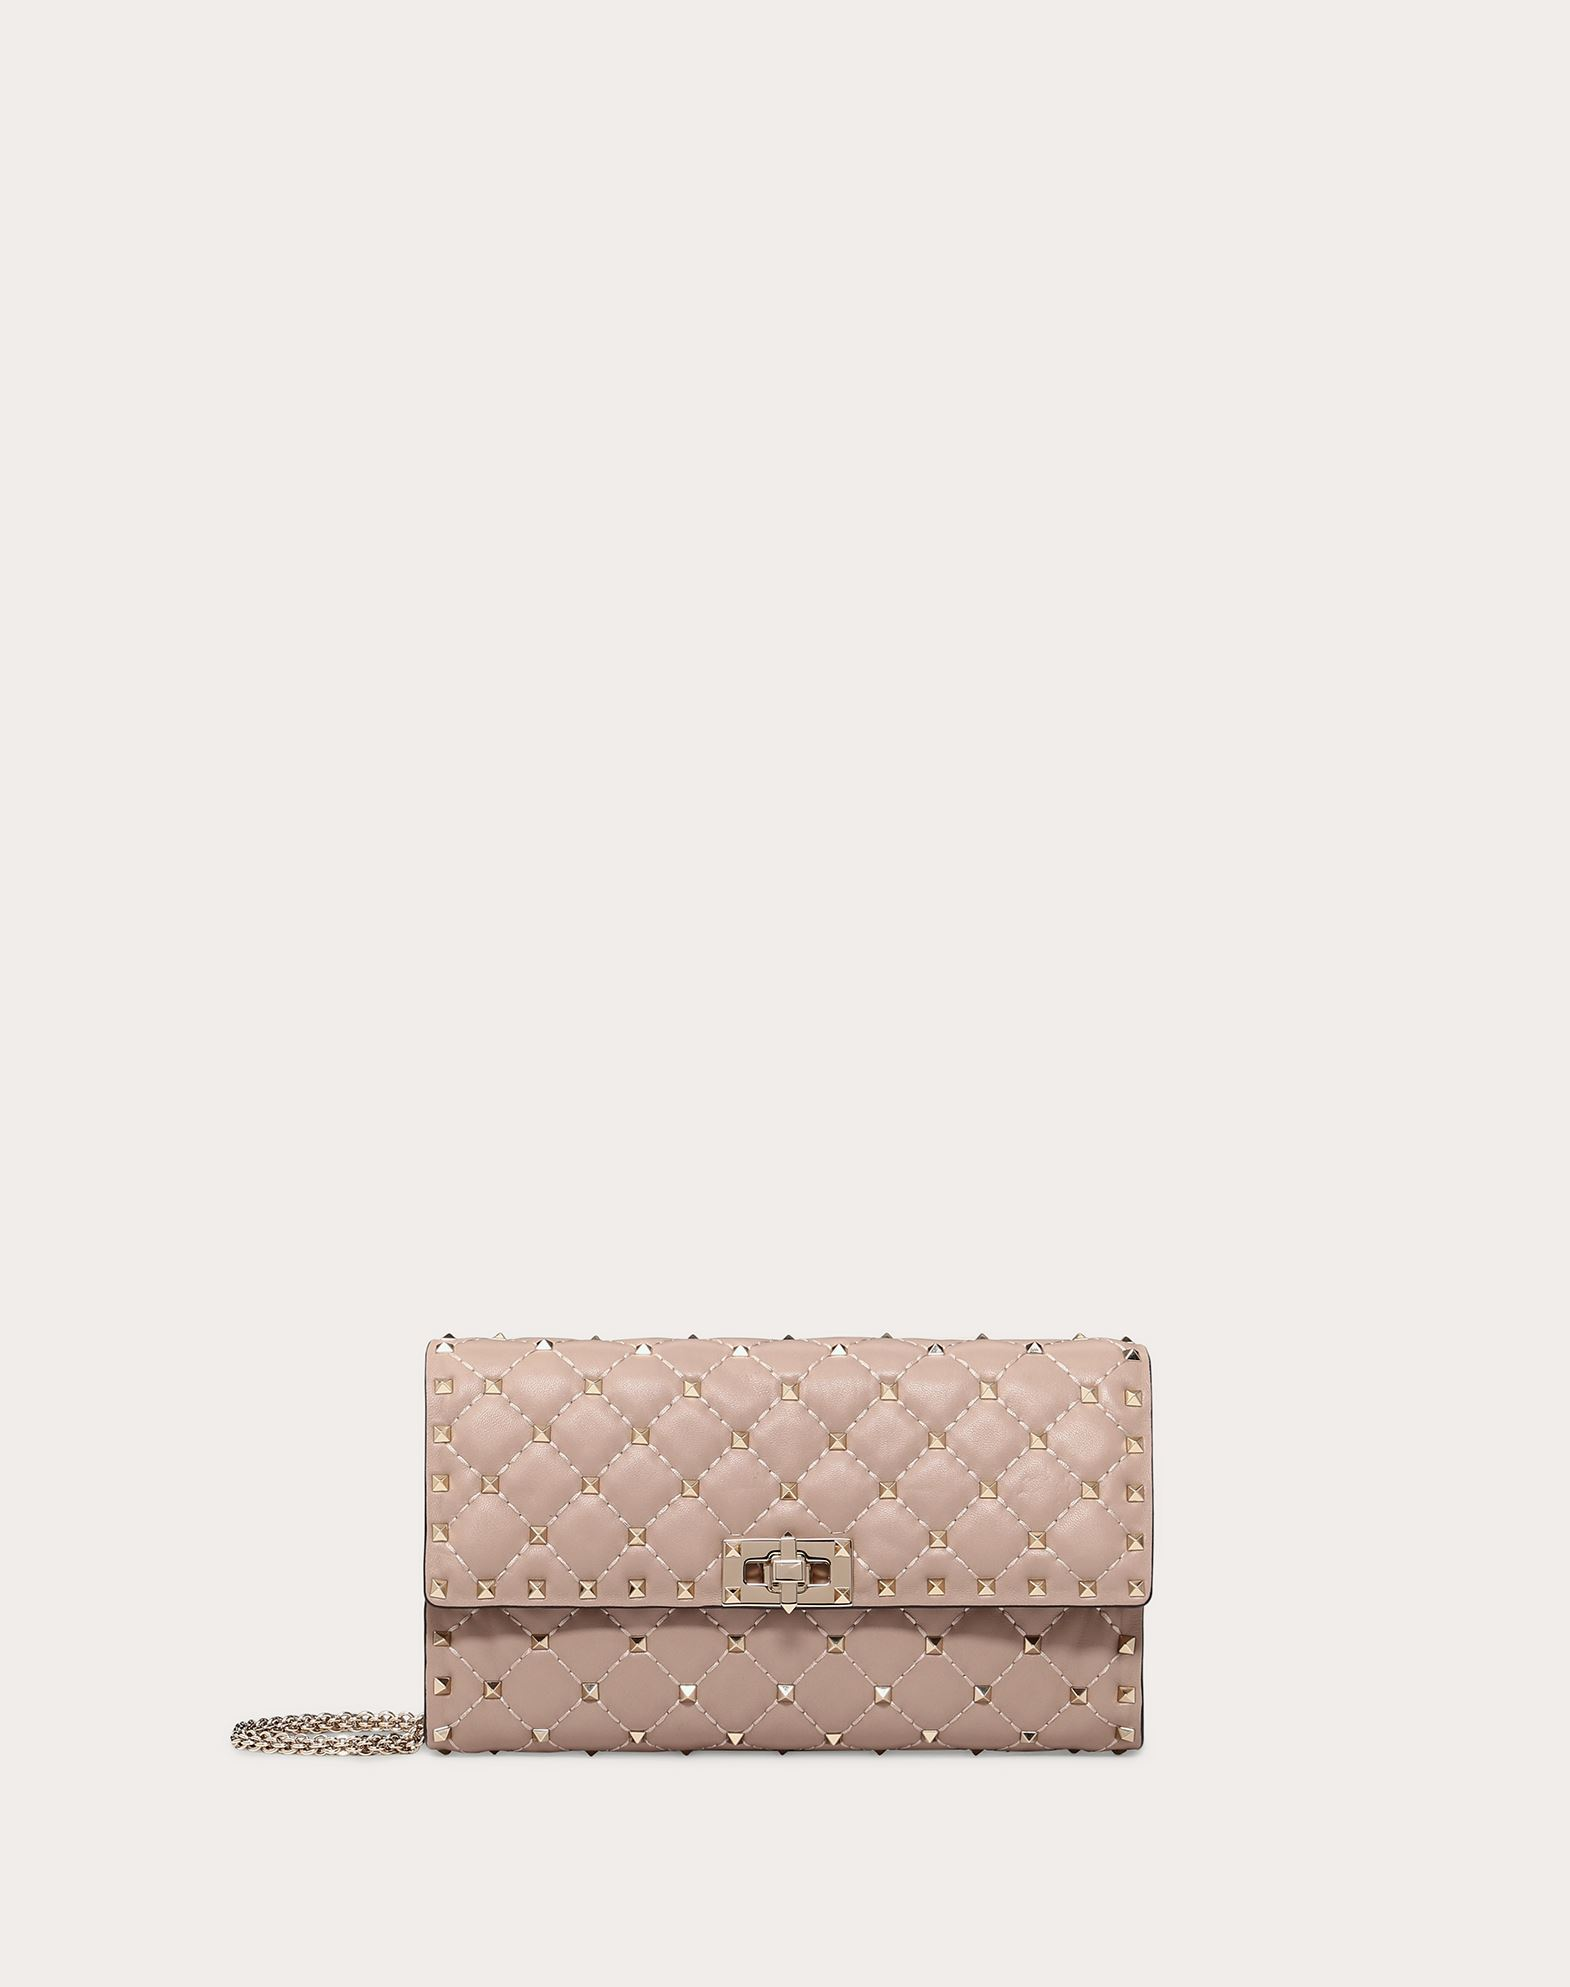 Rockstud Spike Nappa Leather Crossbody Clutch Bag